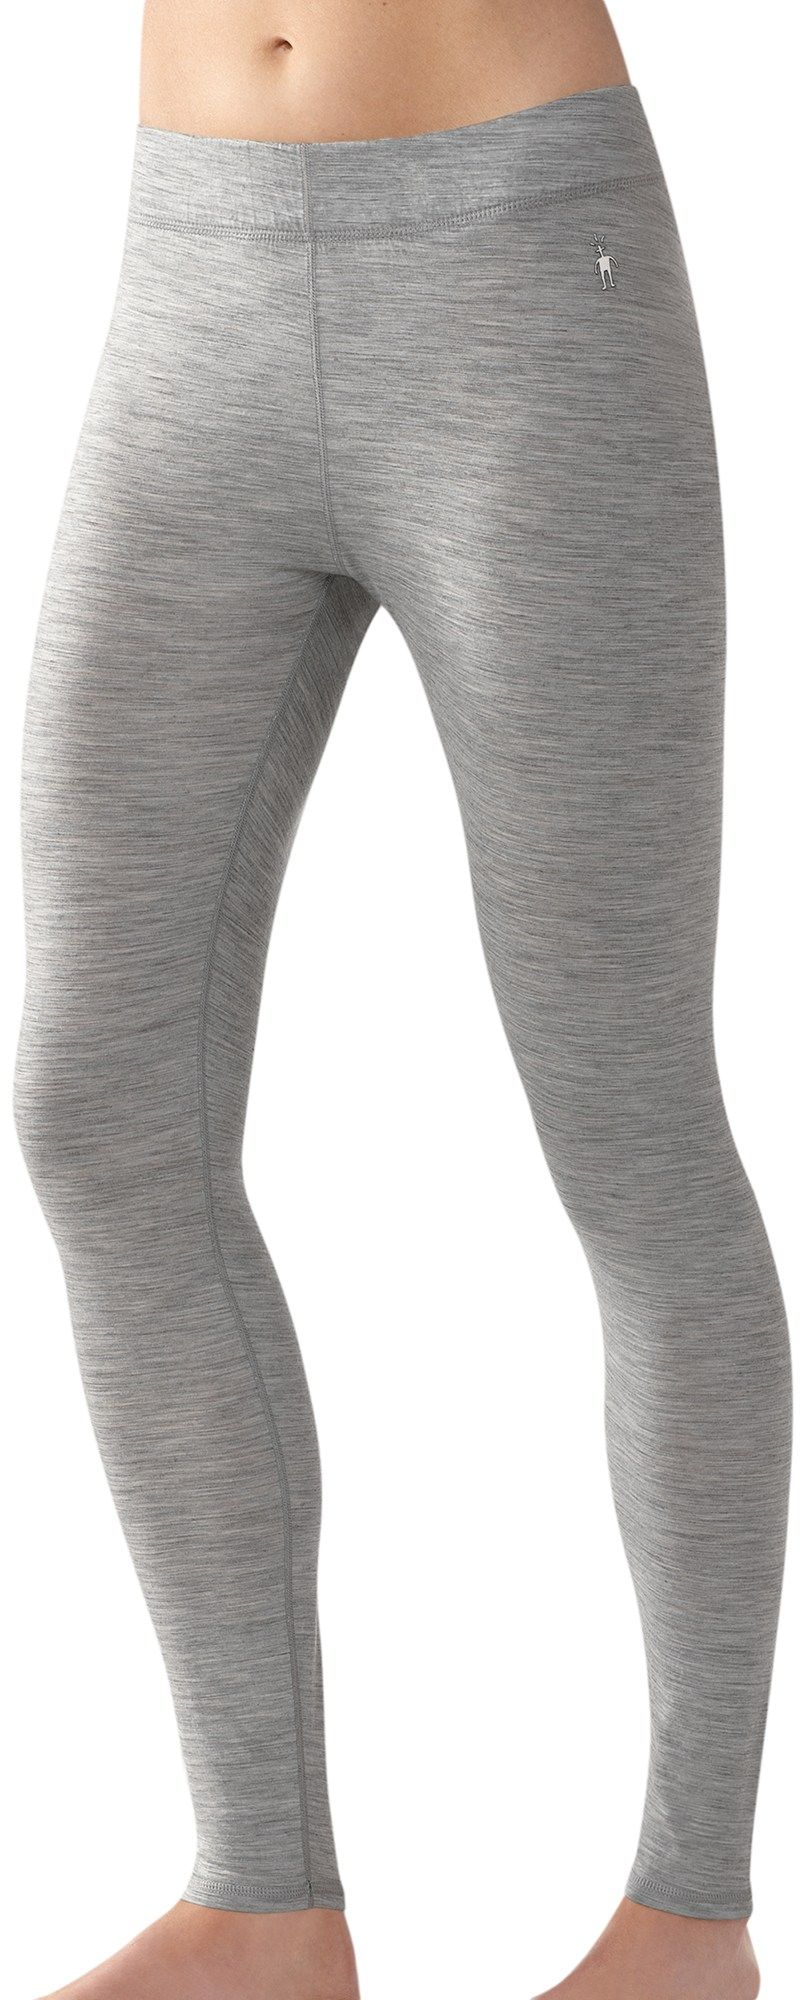 Microweight Long Underwear Bottoms - Wool - Women's | Products ...